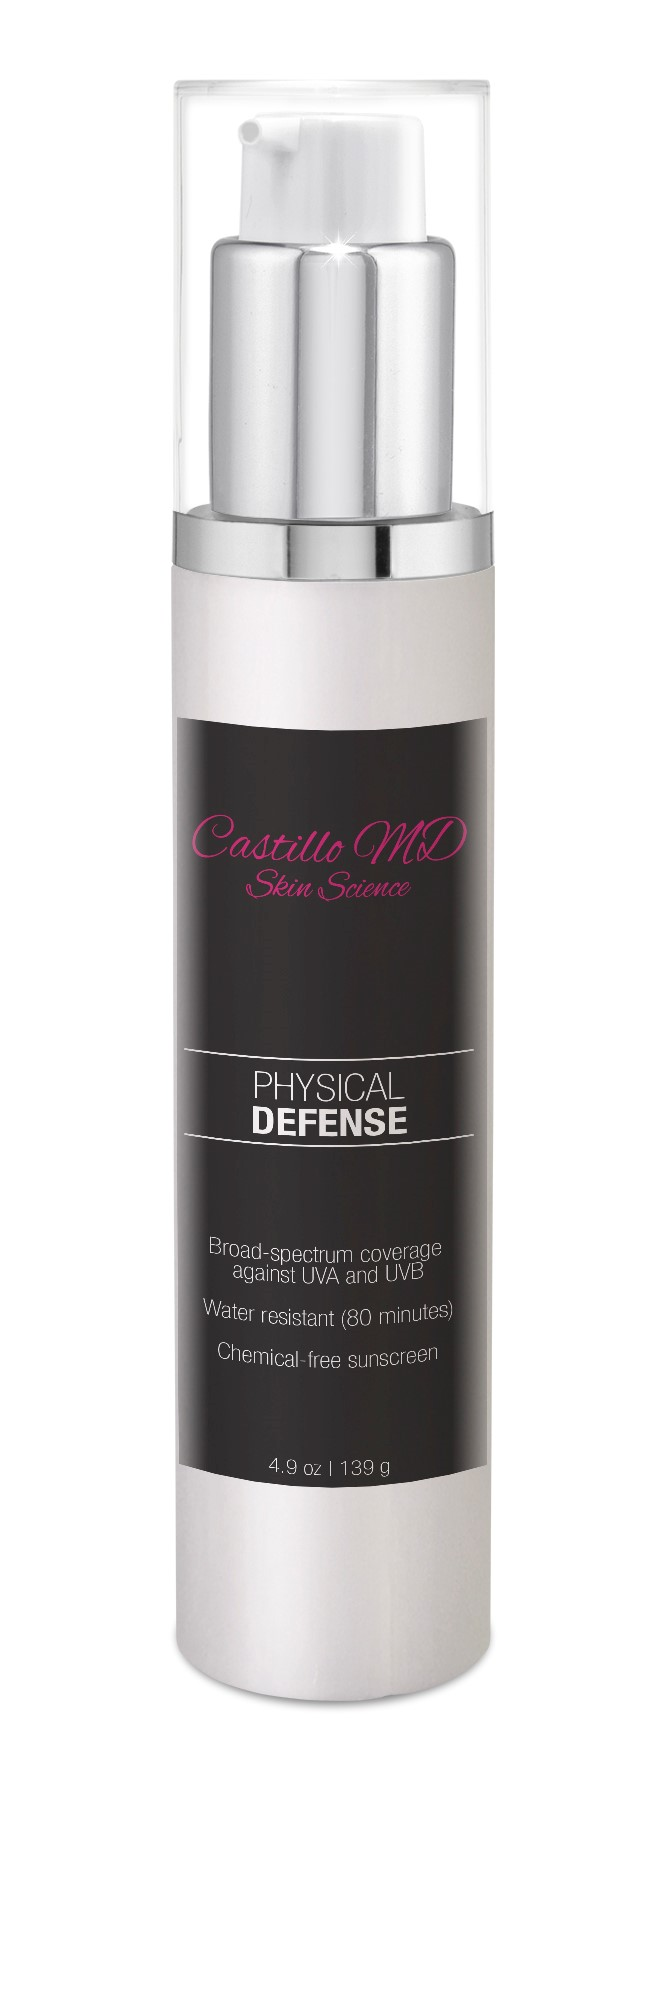 Bottle of physical defense spf 40 by castillo md skin science